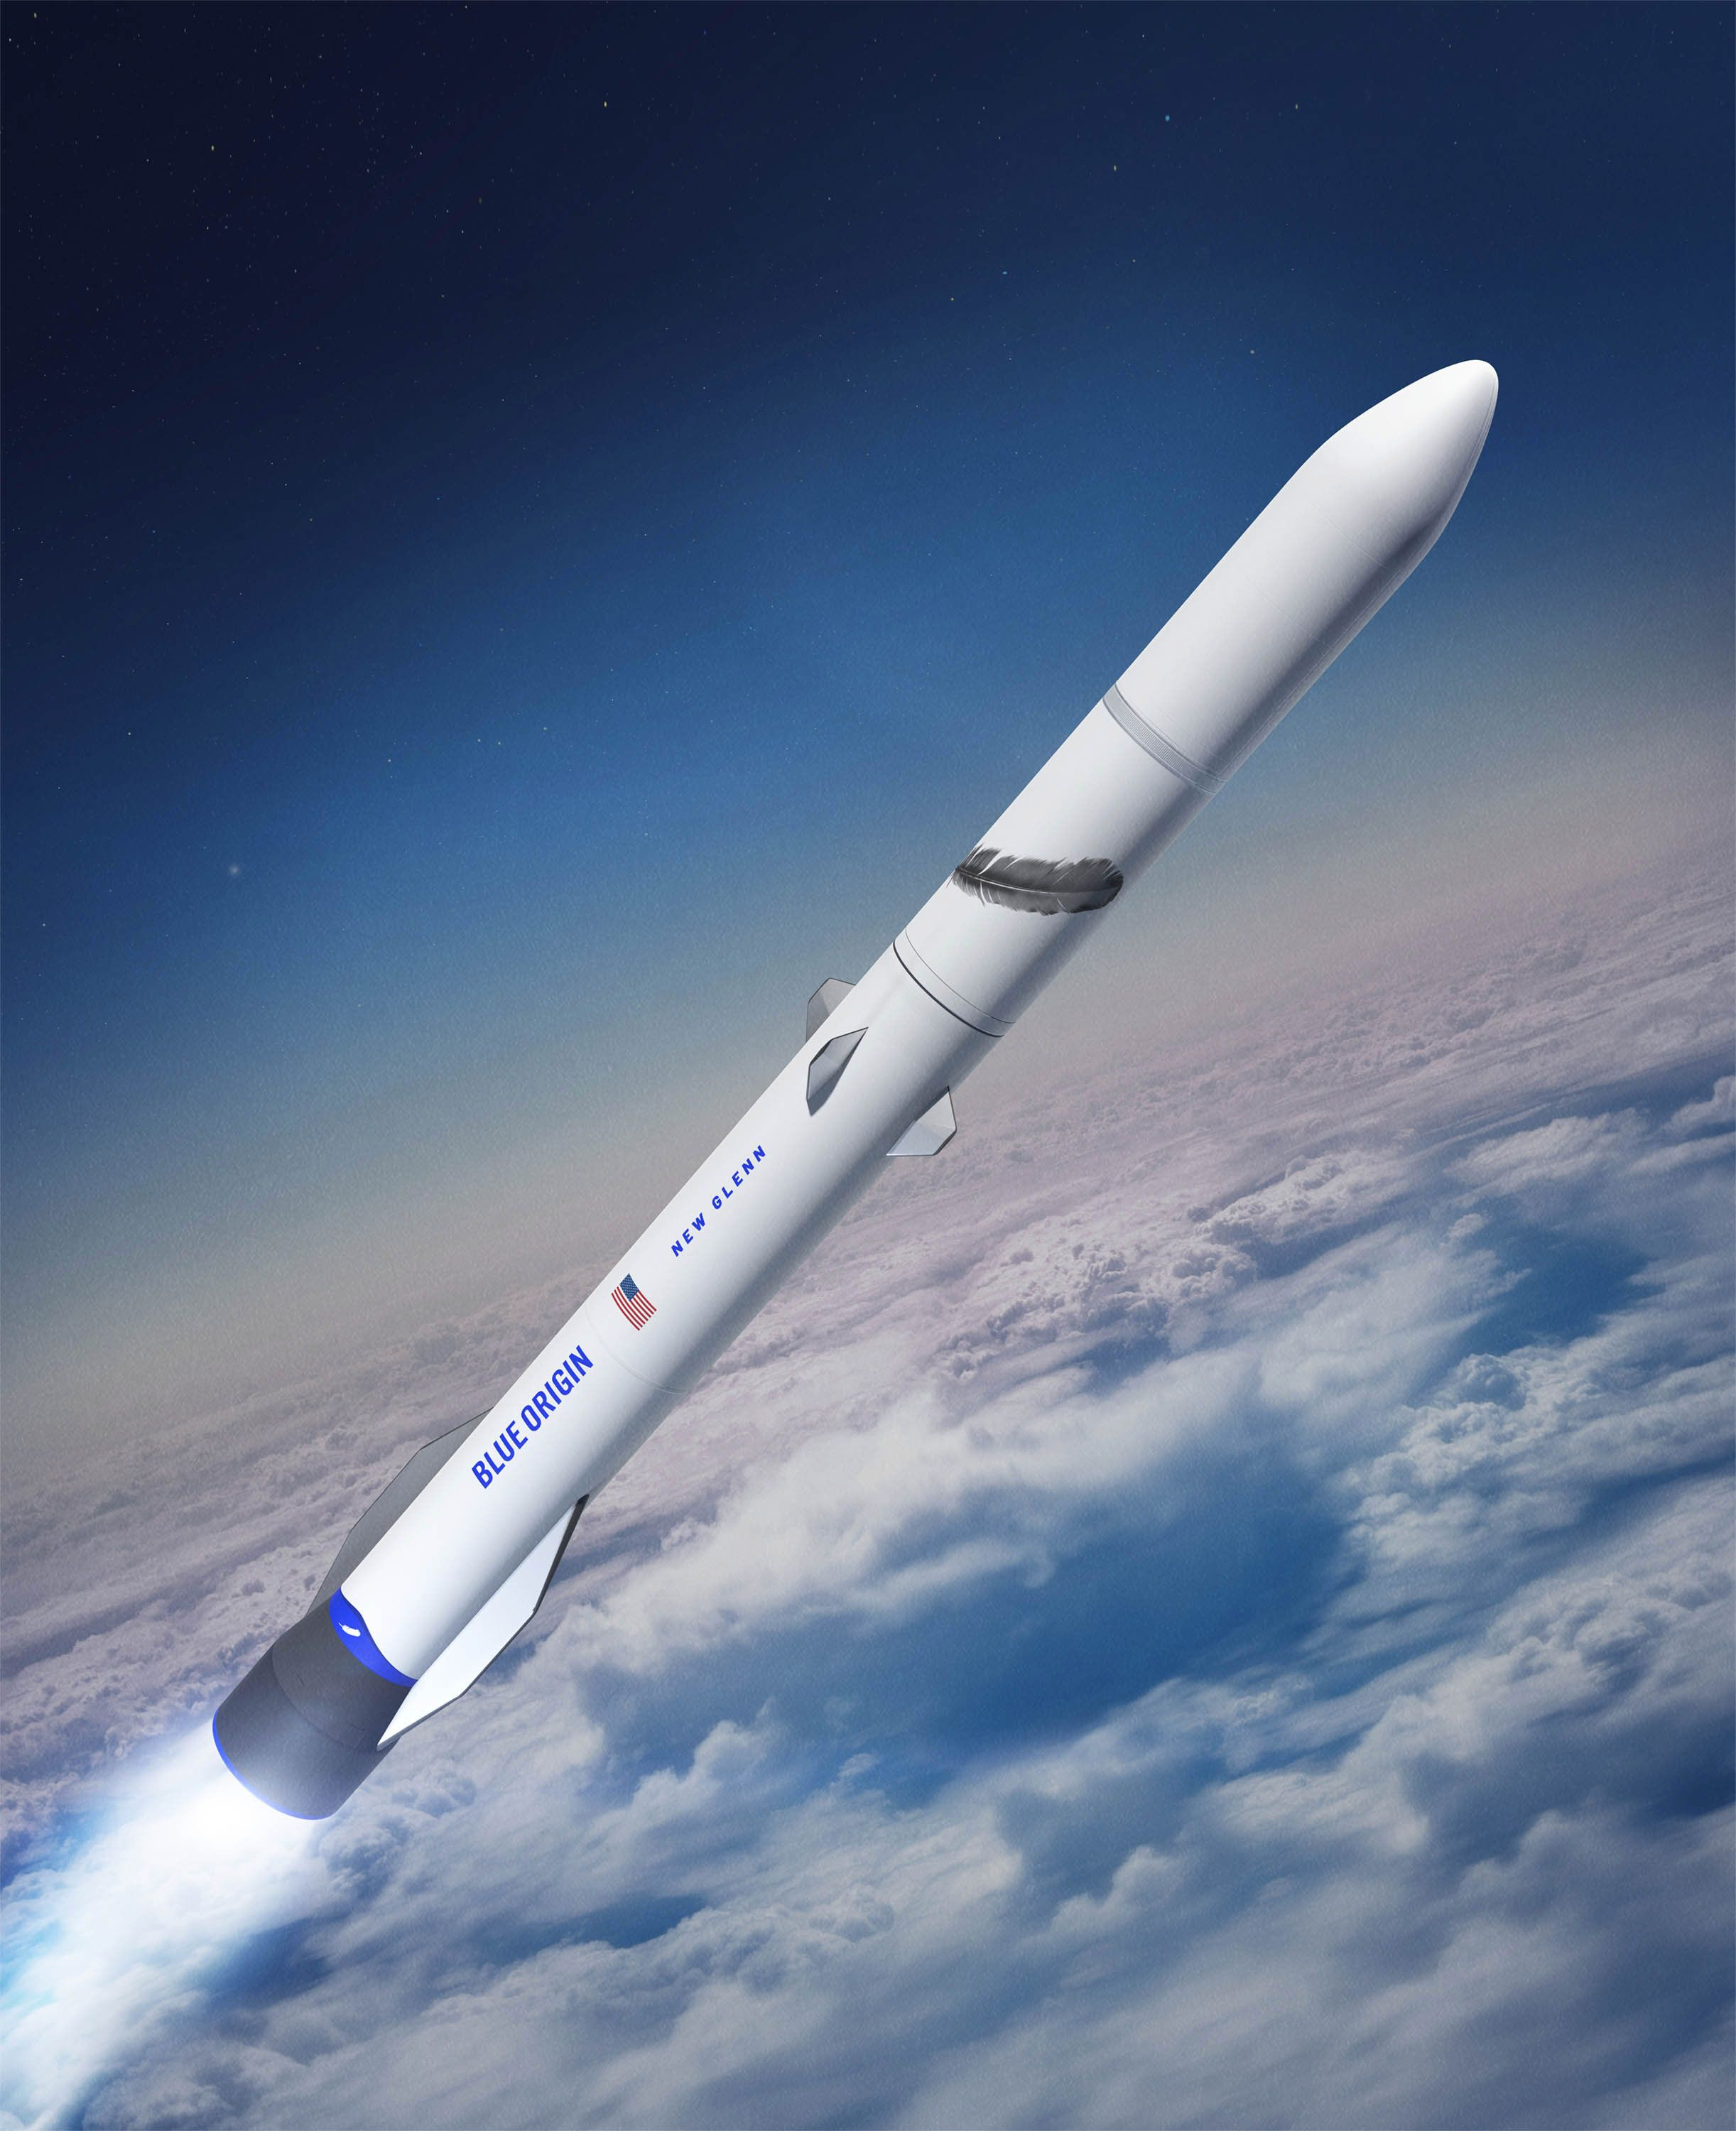 BlueOrigin's New Glenn rendered in flight. It's a